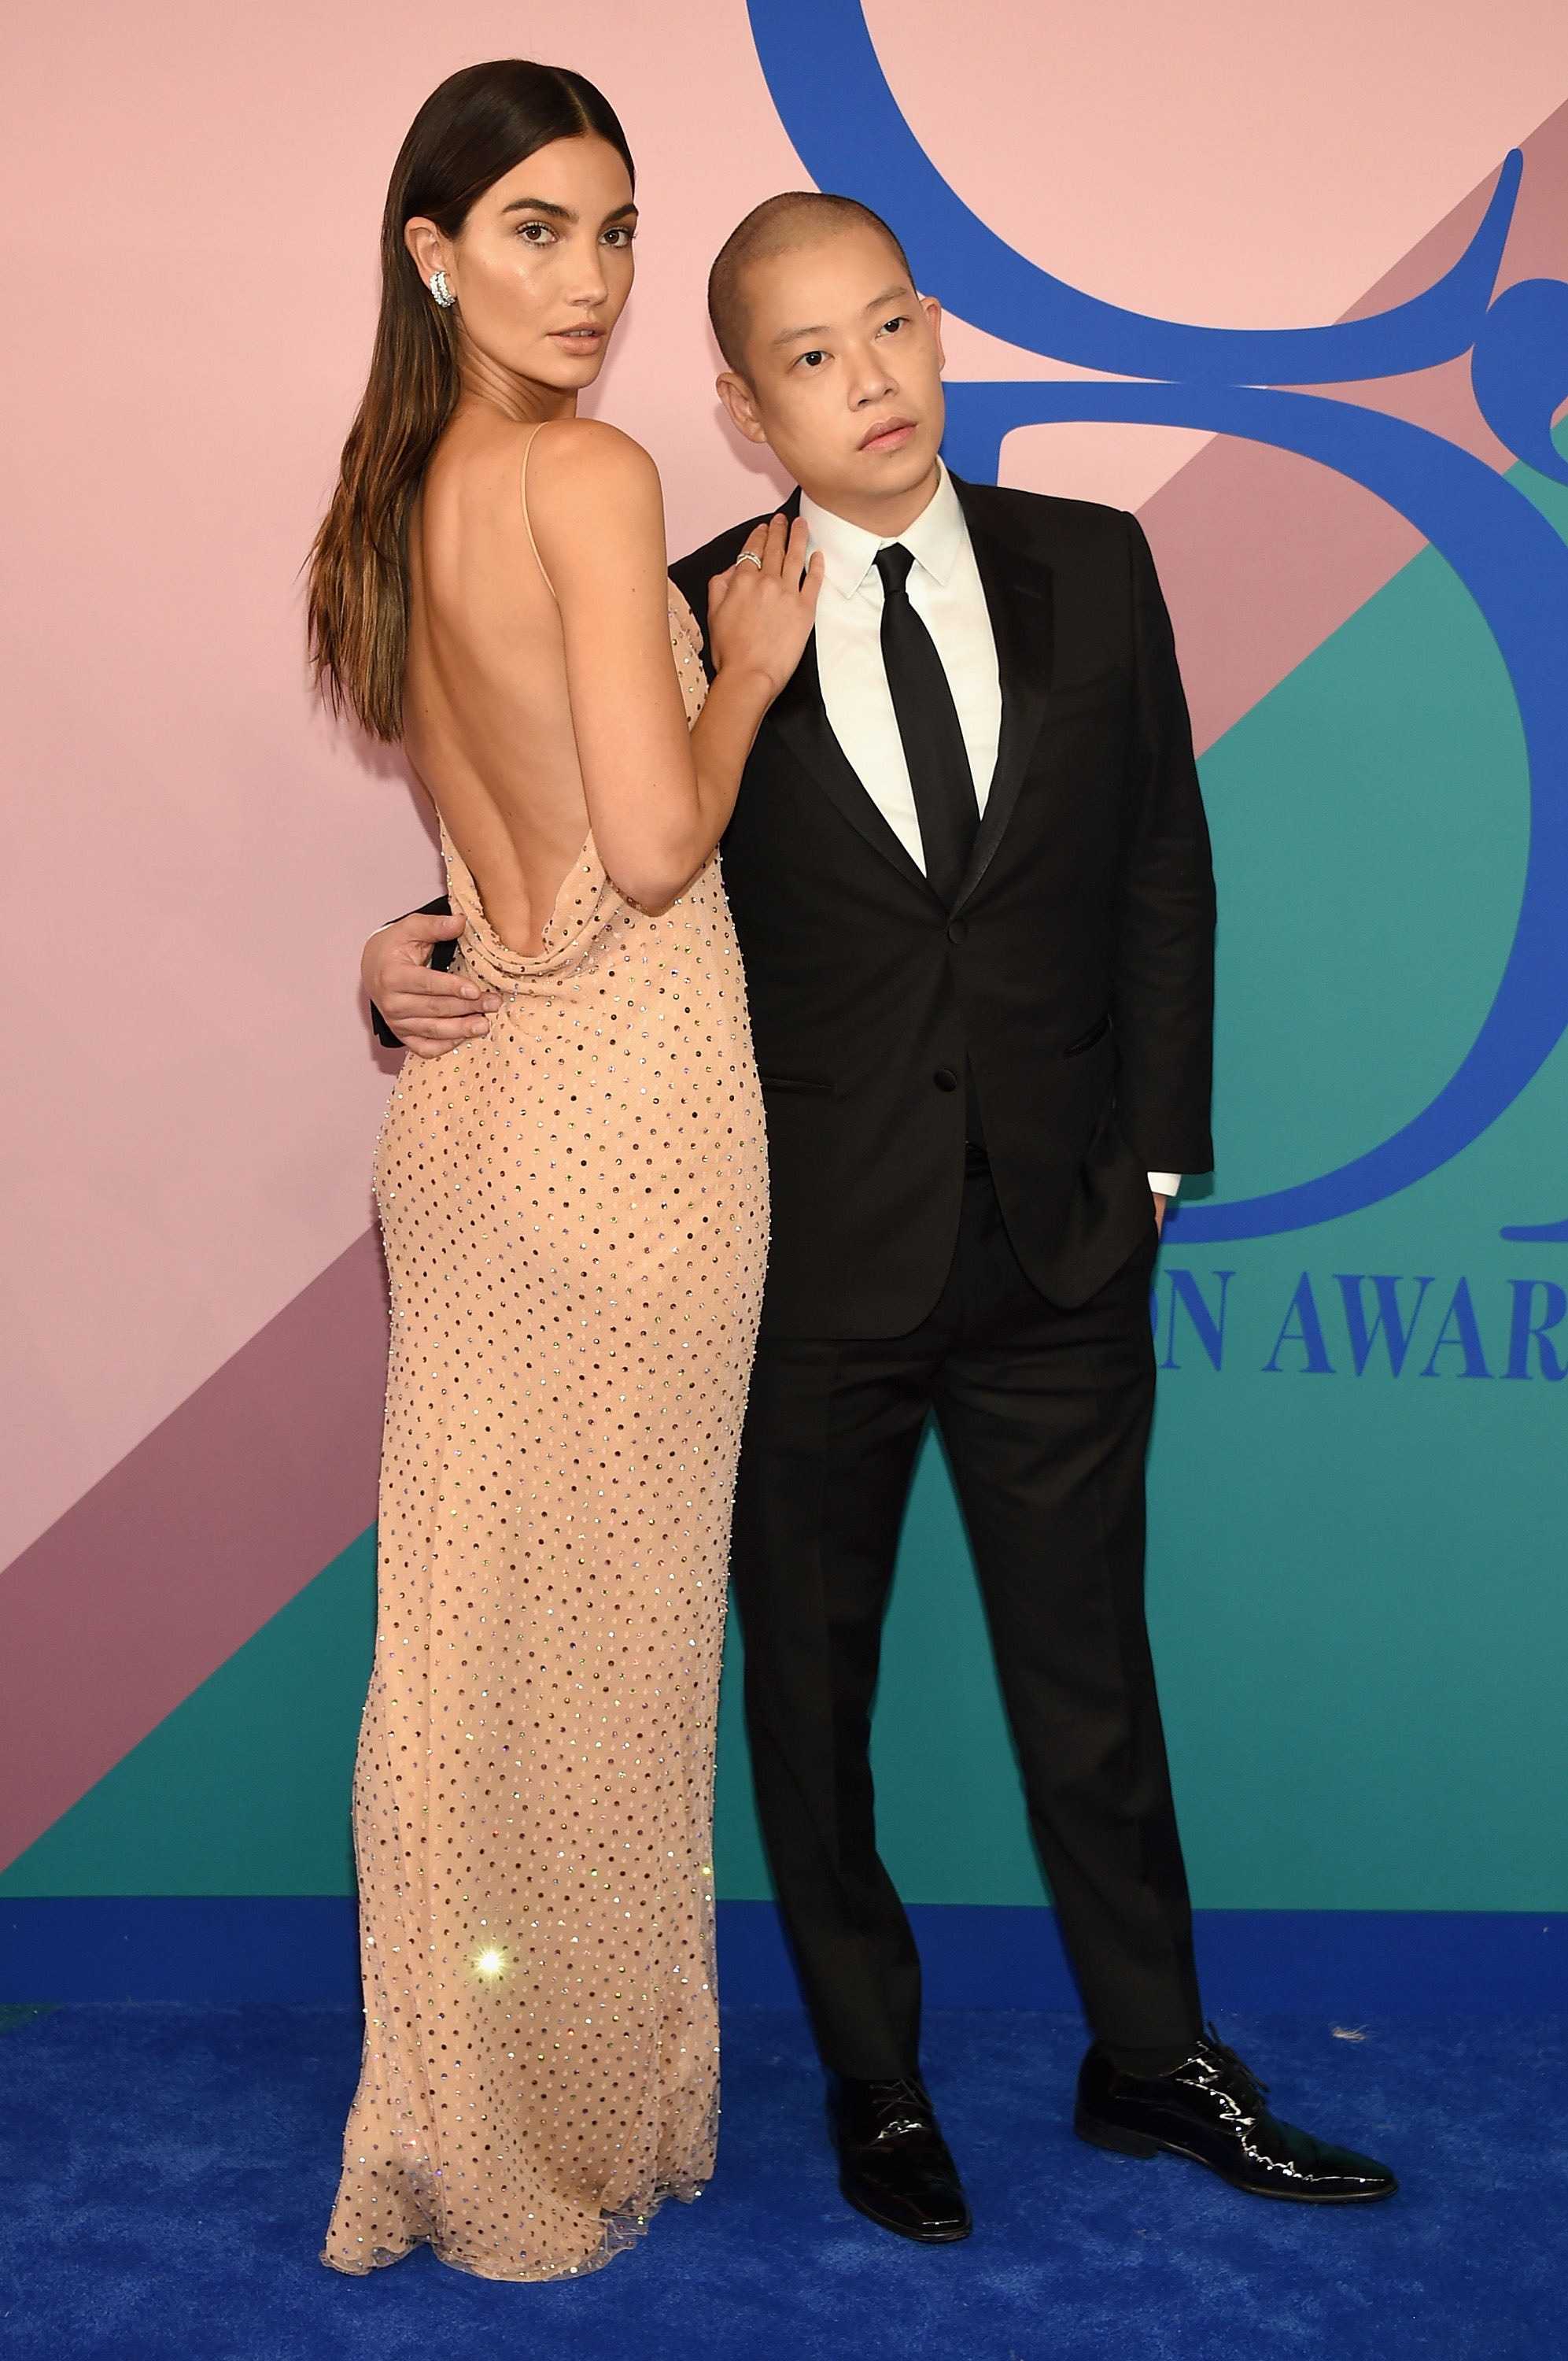 NEW YORK, NY - JUNE 05:  Lily Aldridge and Jason Wu attend the 2017 CFDA Fashion Awards at Hammerstein Ballroom on June 5, 2017 in New York City.  (Photo by Dimitrios Kambouris/Getty Images)